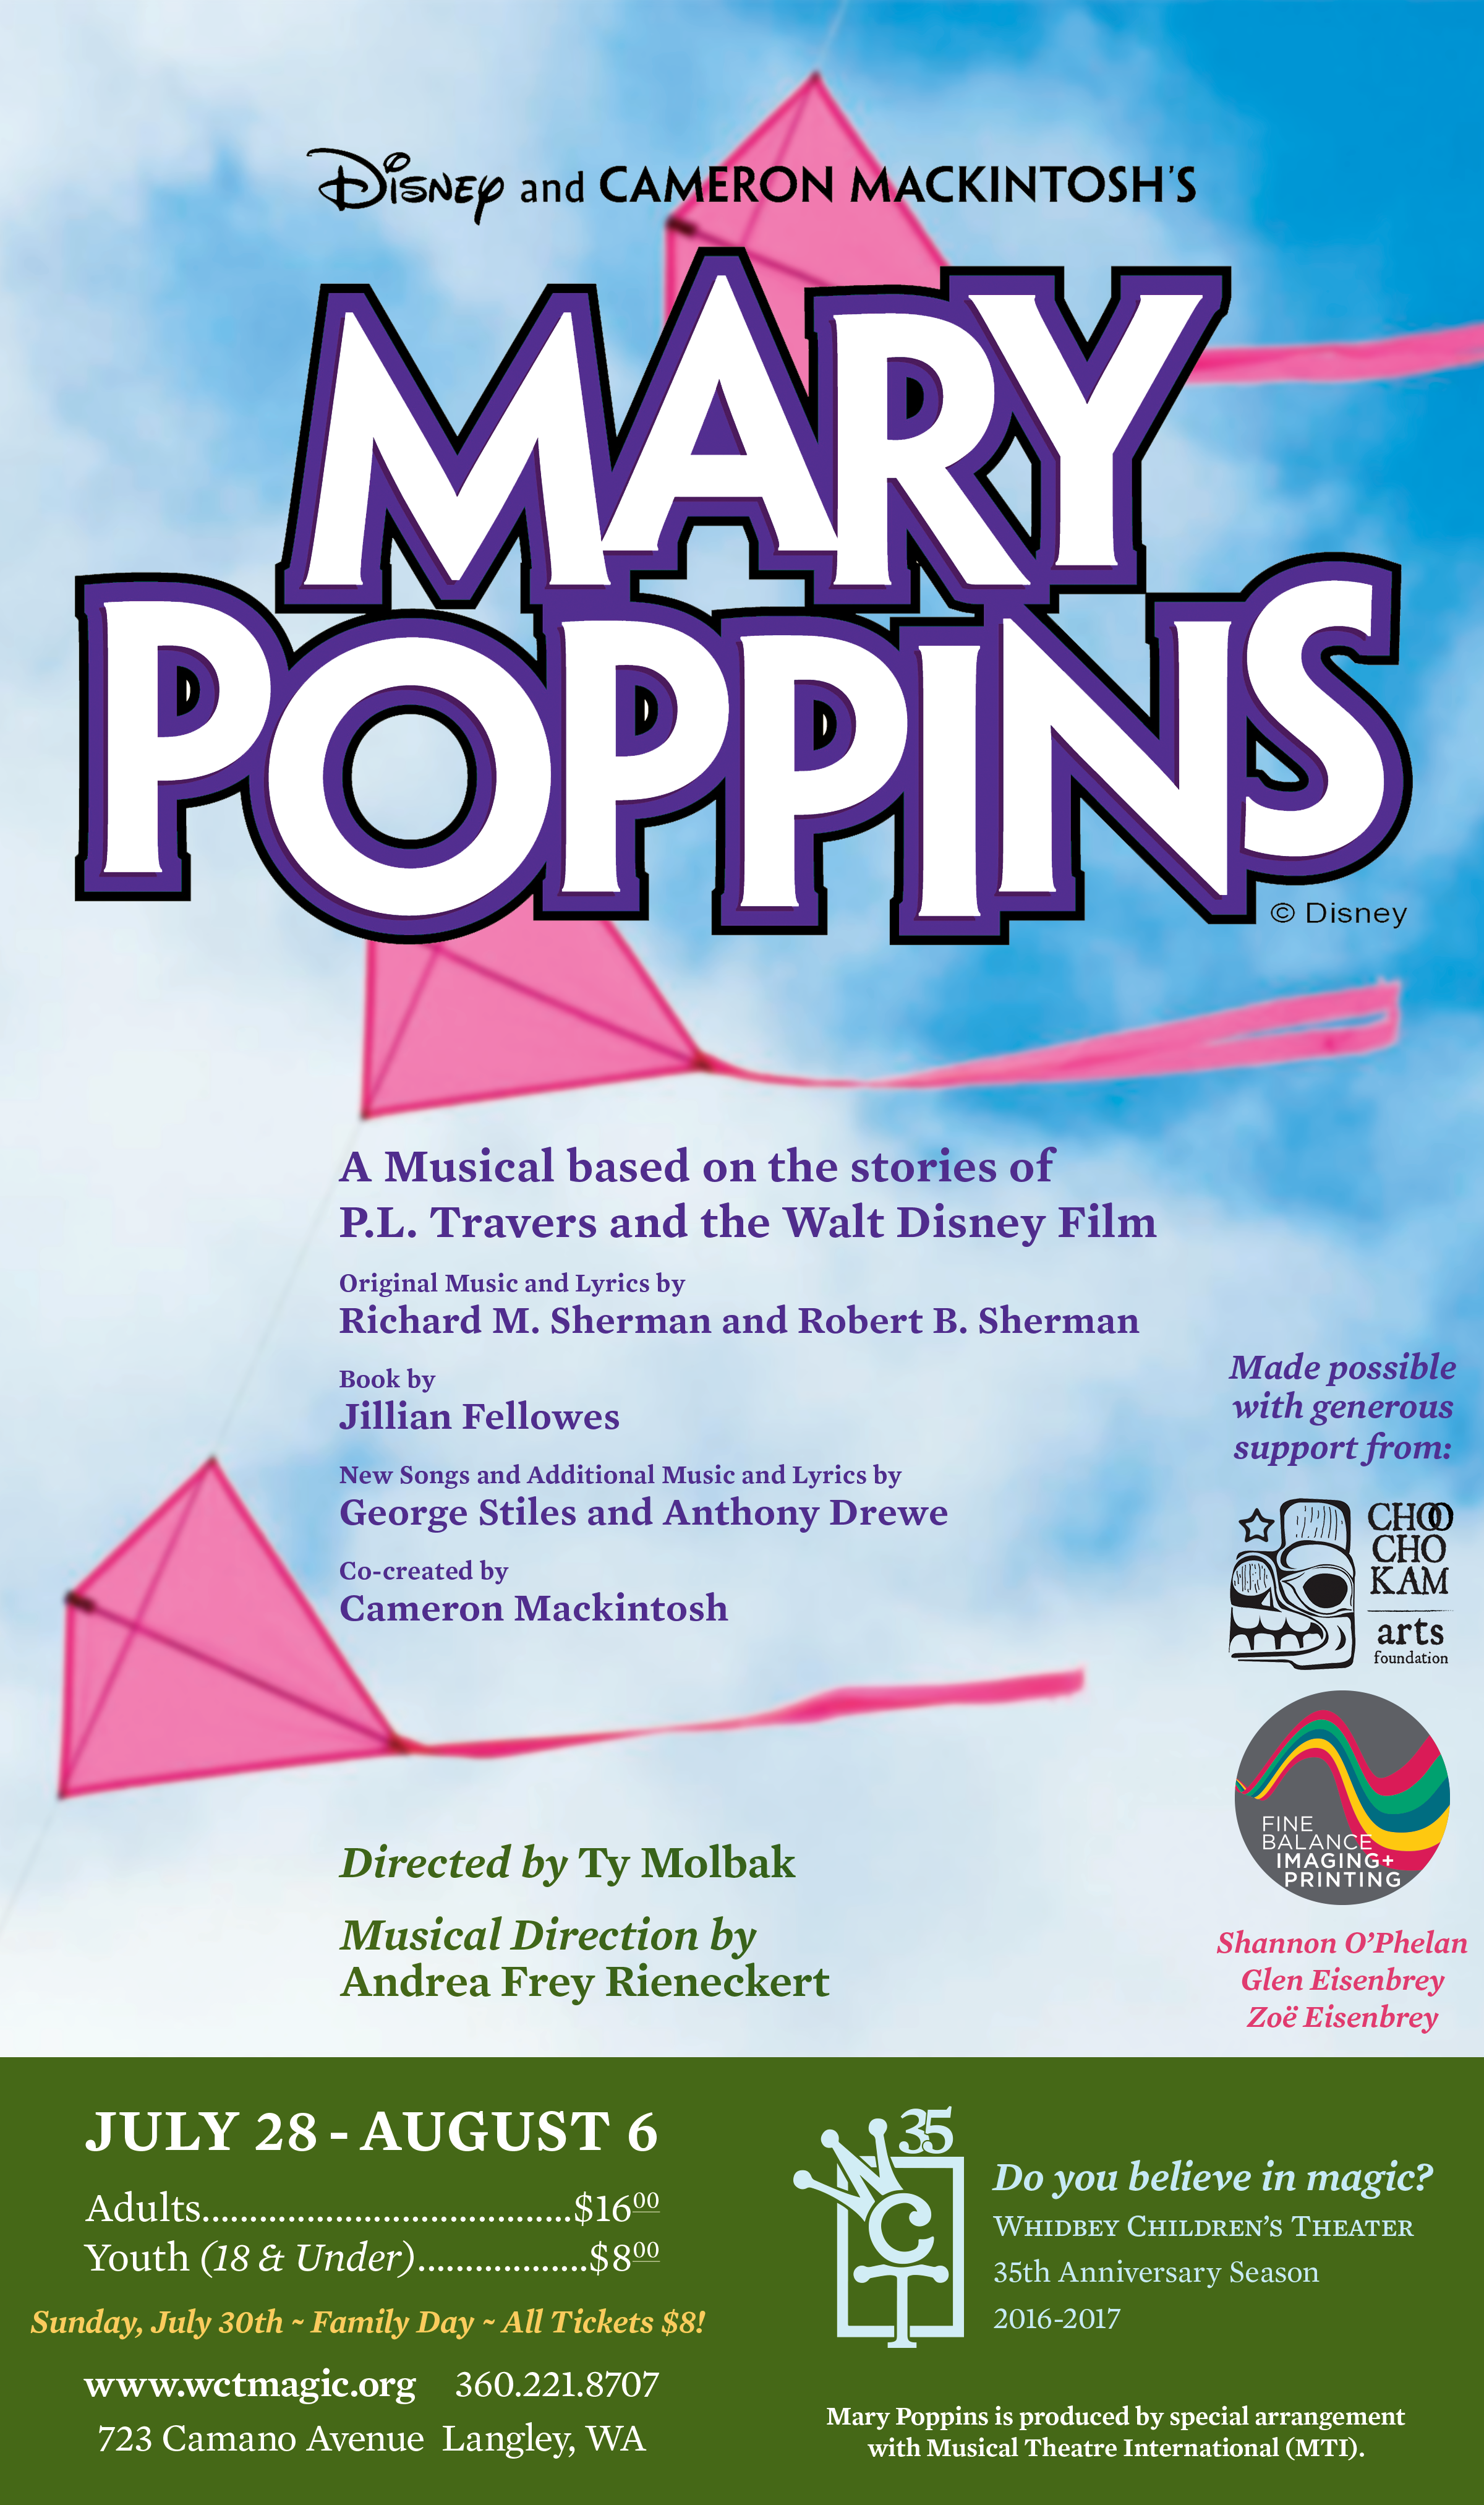 MaryPoppins_Poster-Sponsors-LGweb.png